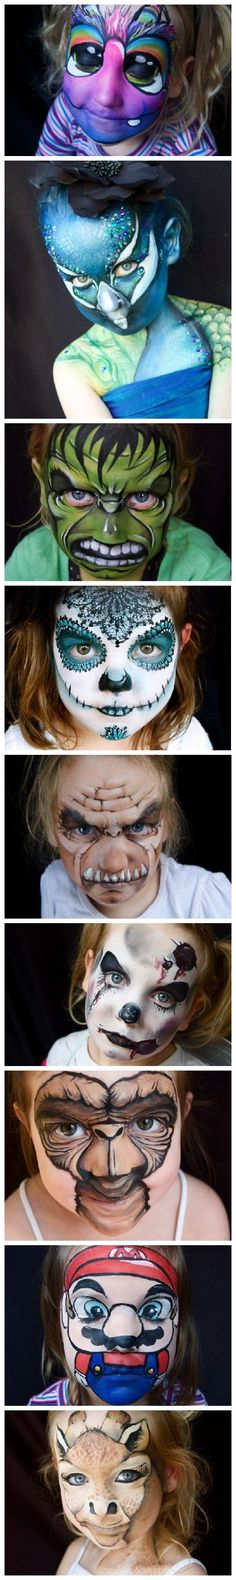 face Painted #Halloween #Halloween make-up